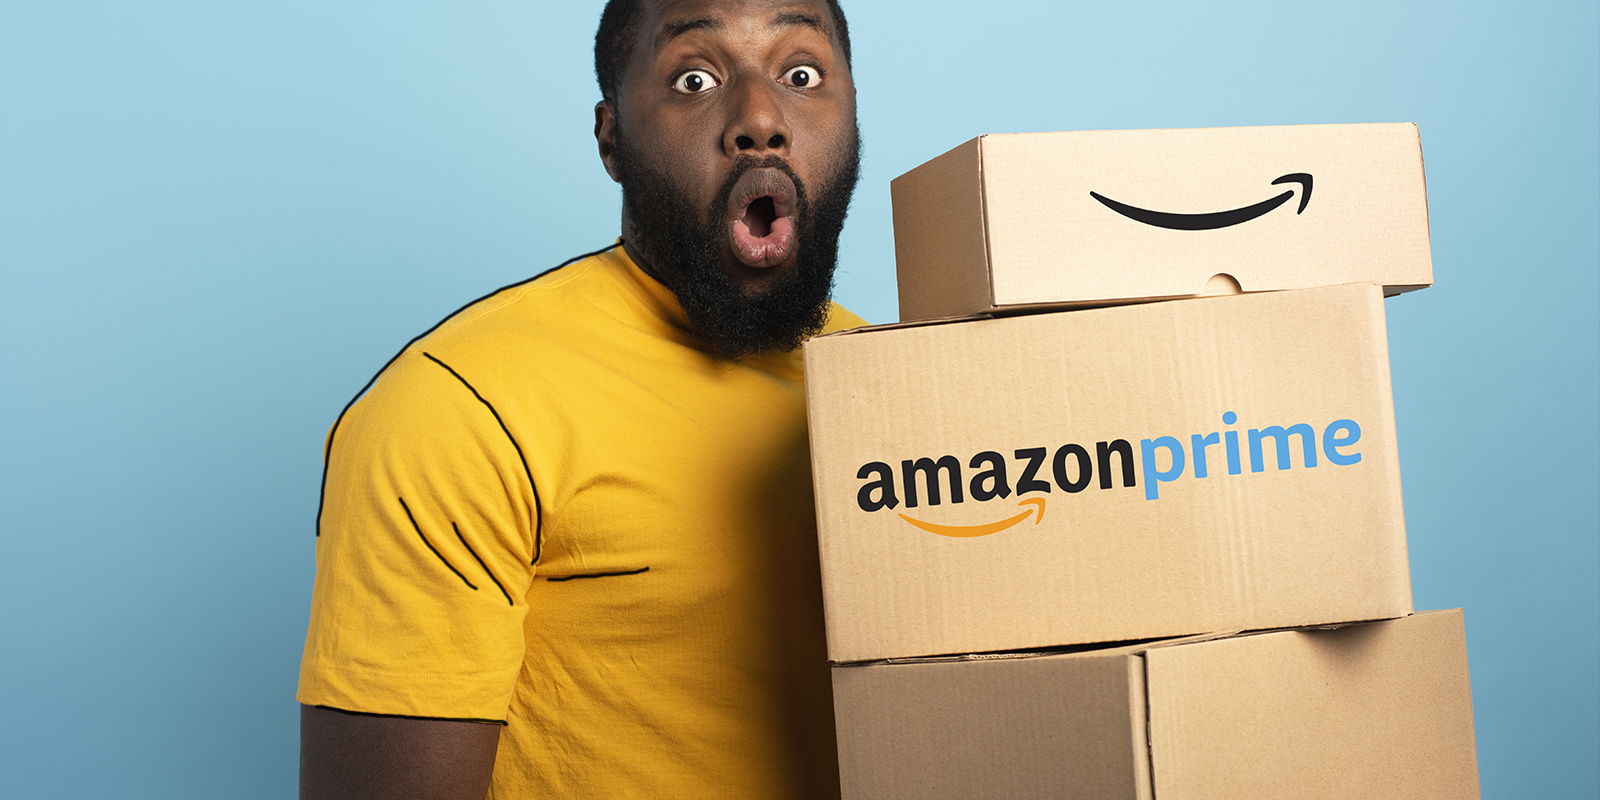 a man holding Amazon prime boxes, ready to boost distribution